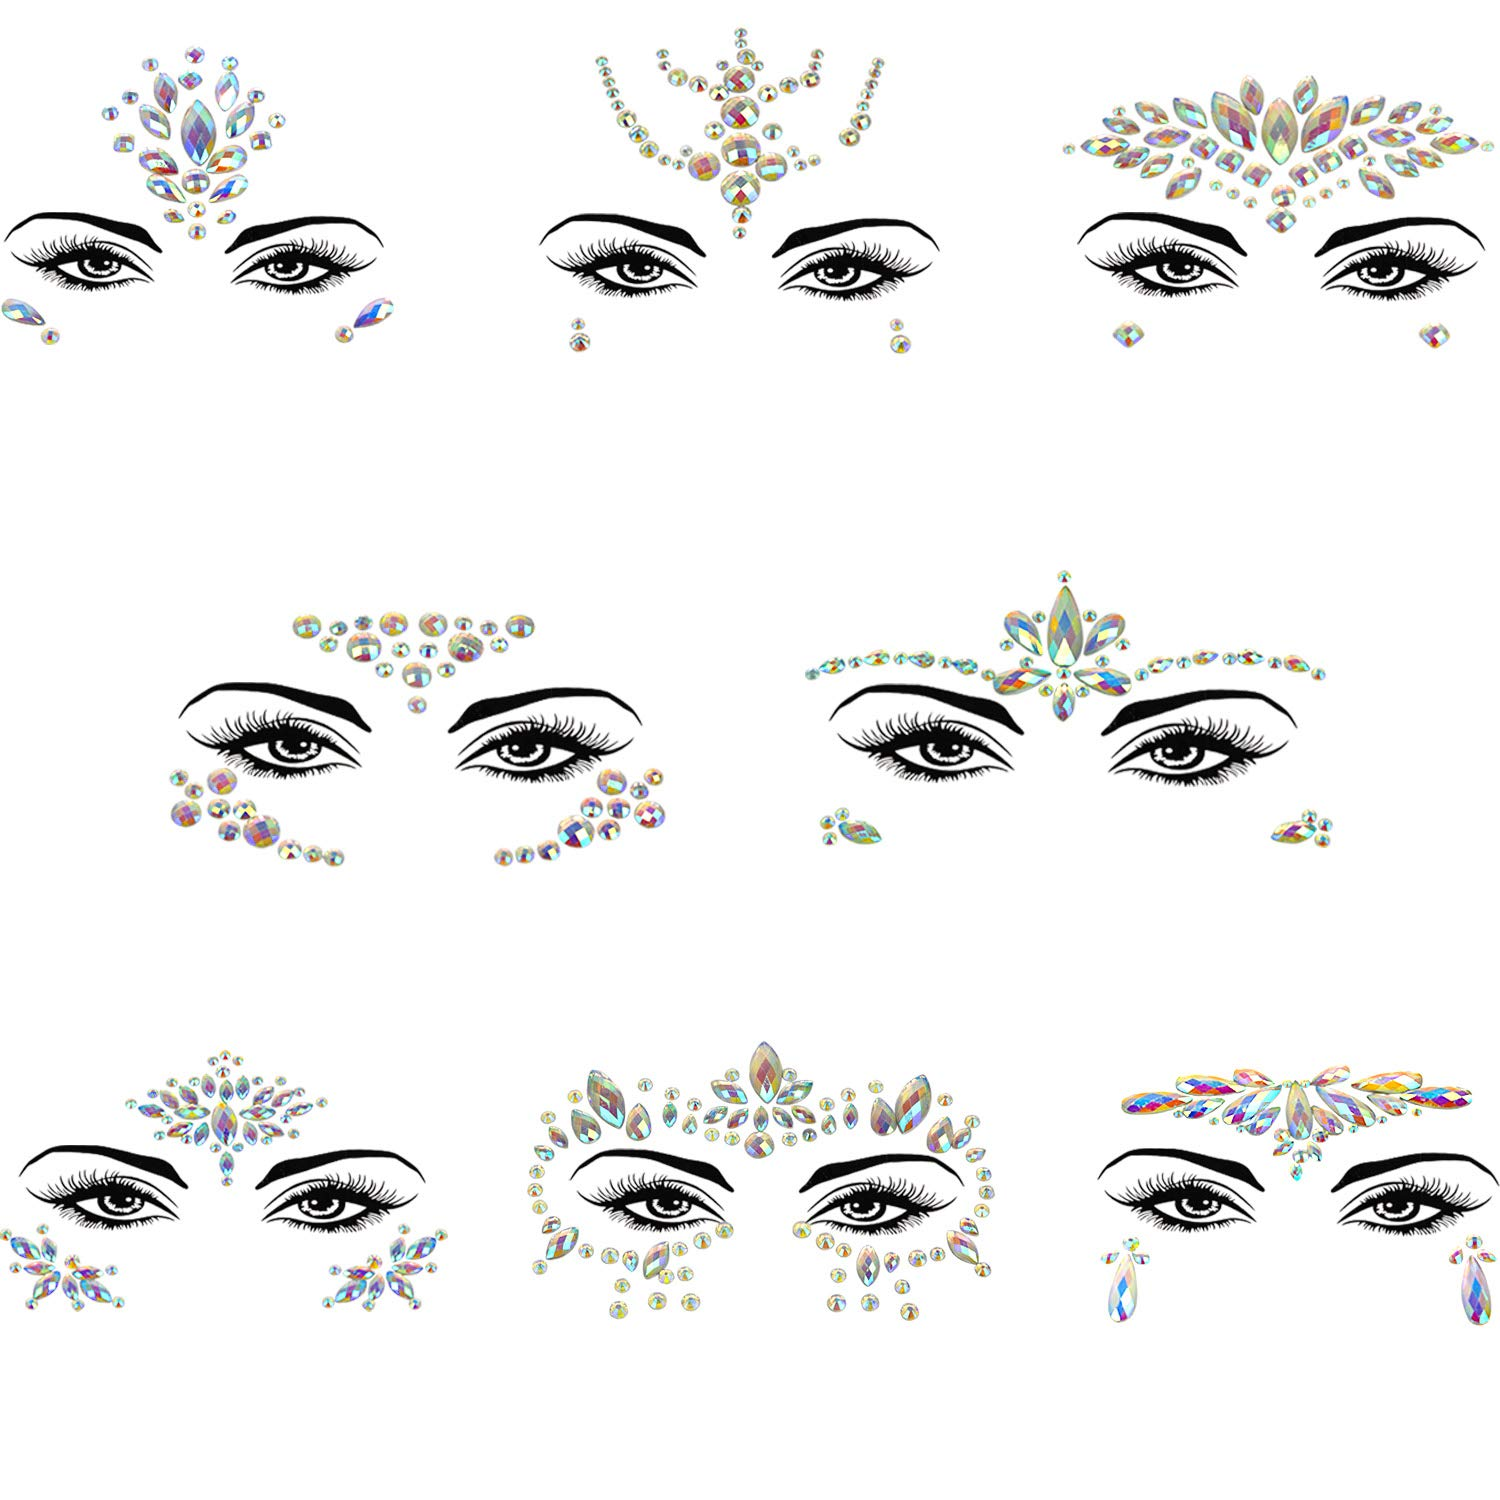 Noctilucent Face Gems Mermaid Face Jewels Festival Luminous Body Jewels Glow In The Dark Rhinestones Rave Eyes Bindi Temporary Face Stickers for Festival Party (8 Sets Collection) by Cobinaan